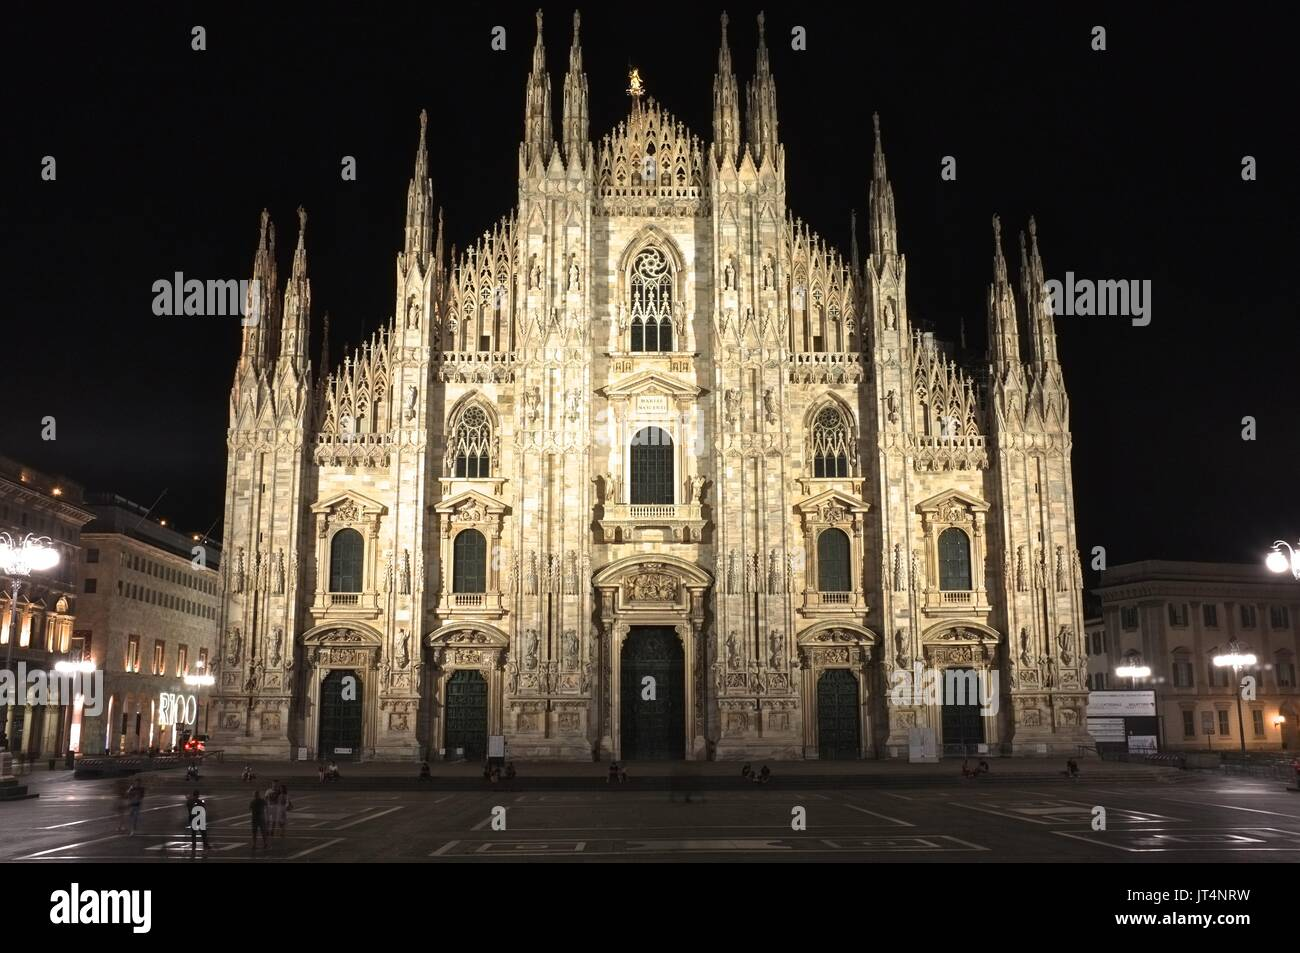 The Duomo (Cathedral), Piazza del Duomo, Milan, Lombardy, Italy, July 2017 Stock Photo